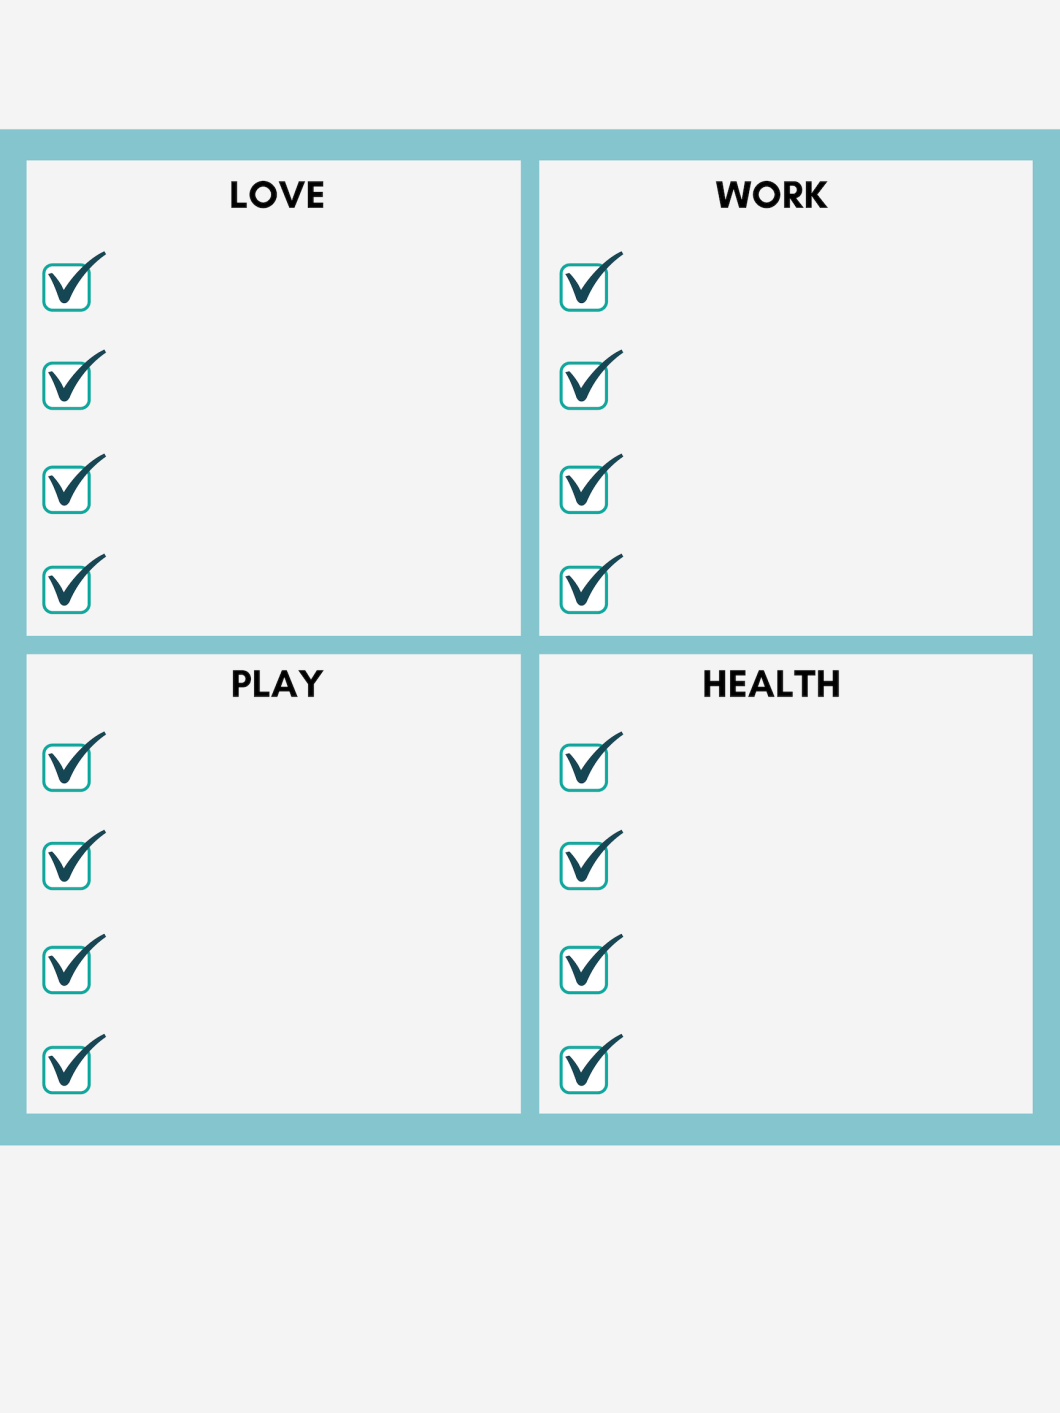 Values: Love, Work, Play, Health